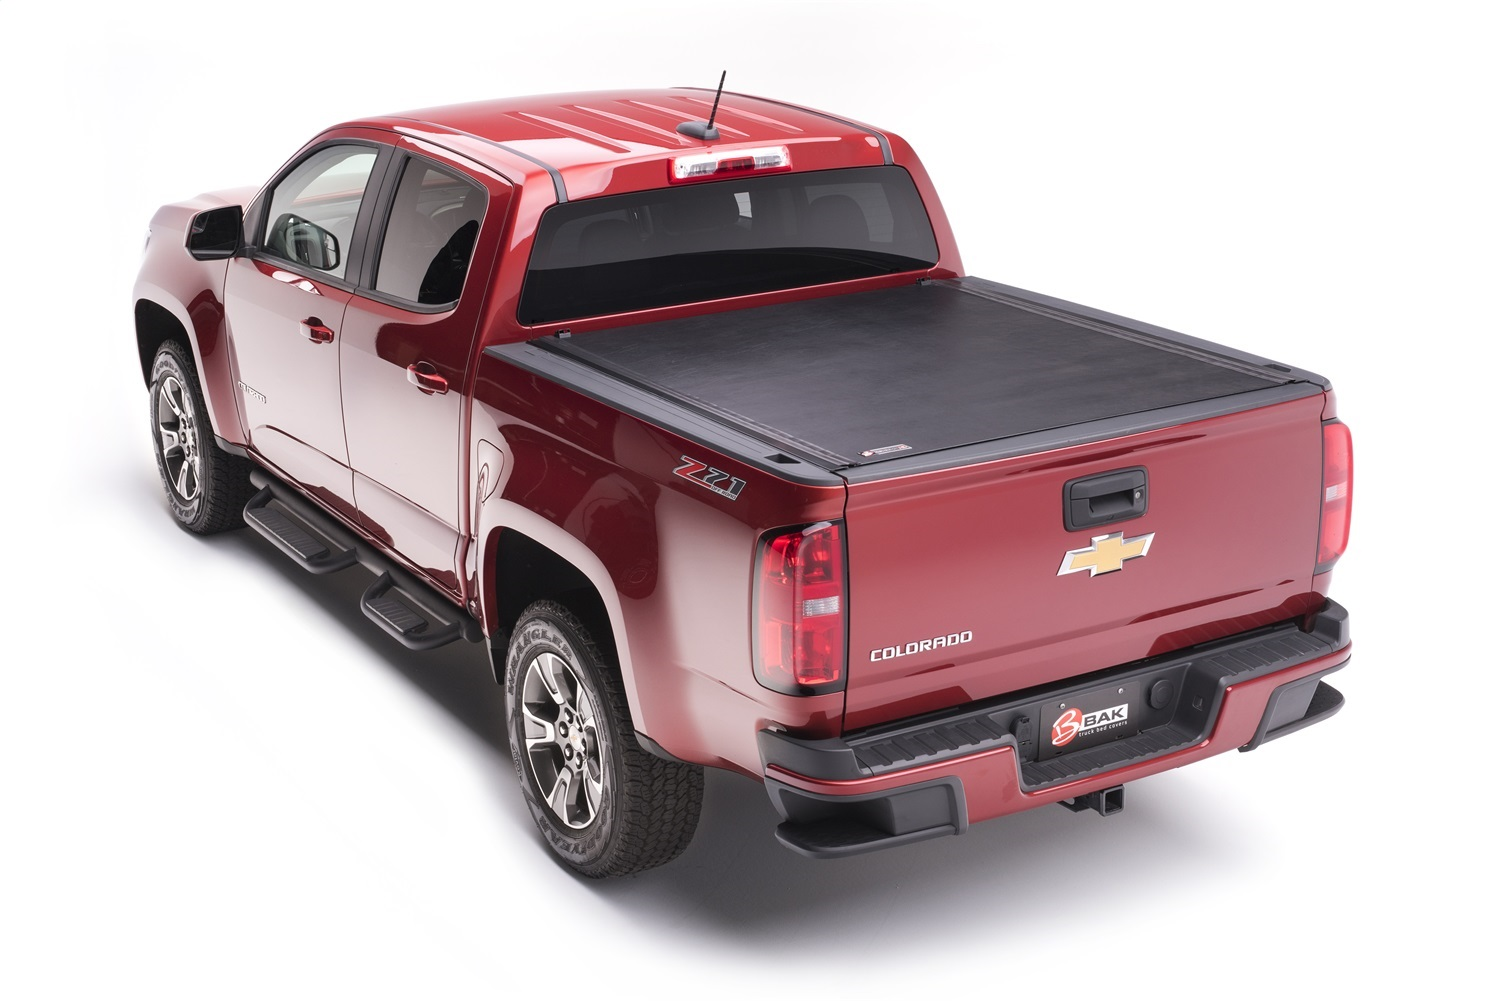 BAK Industries 39125 Revolver X2 Hard Rolling Truck Bed Cover